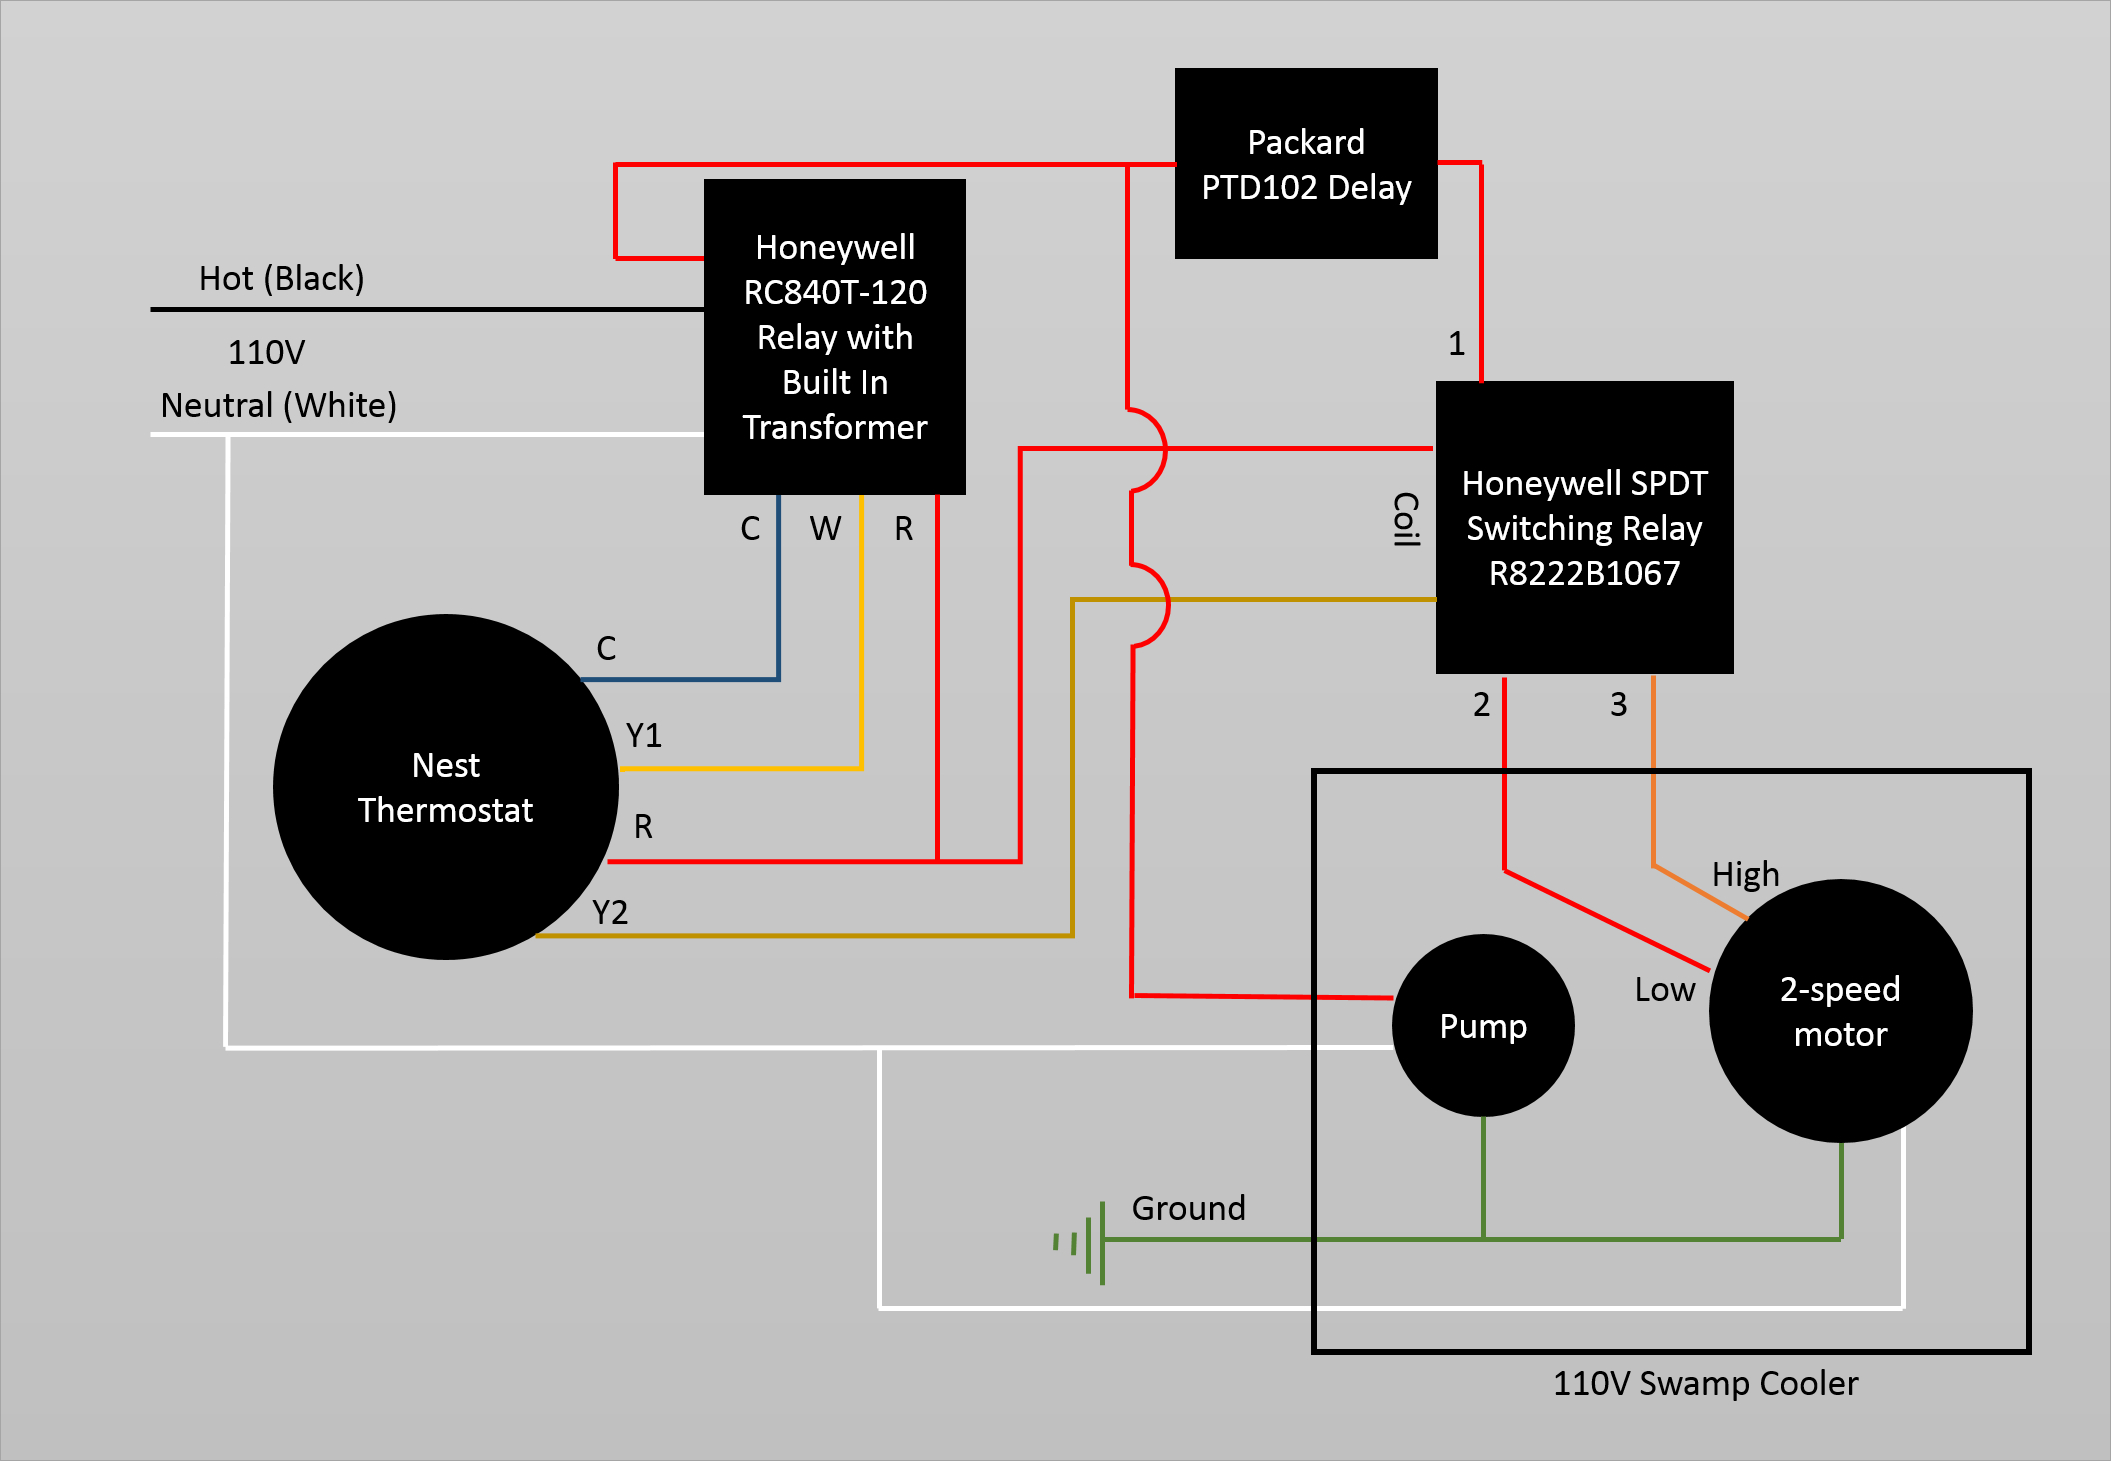 Wiring - Controlling 110V Swamp Cooler Using Nest Thermostat - Home - Nest 2Nd Generation Wiring Diagram